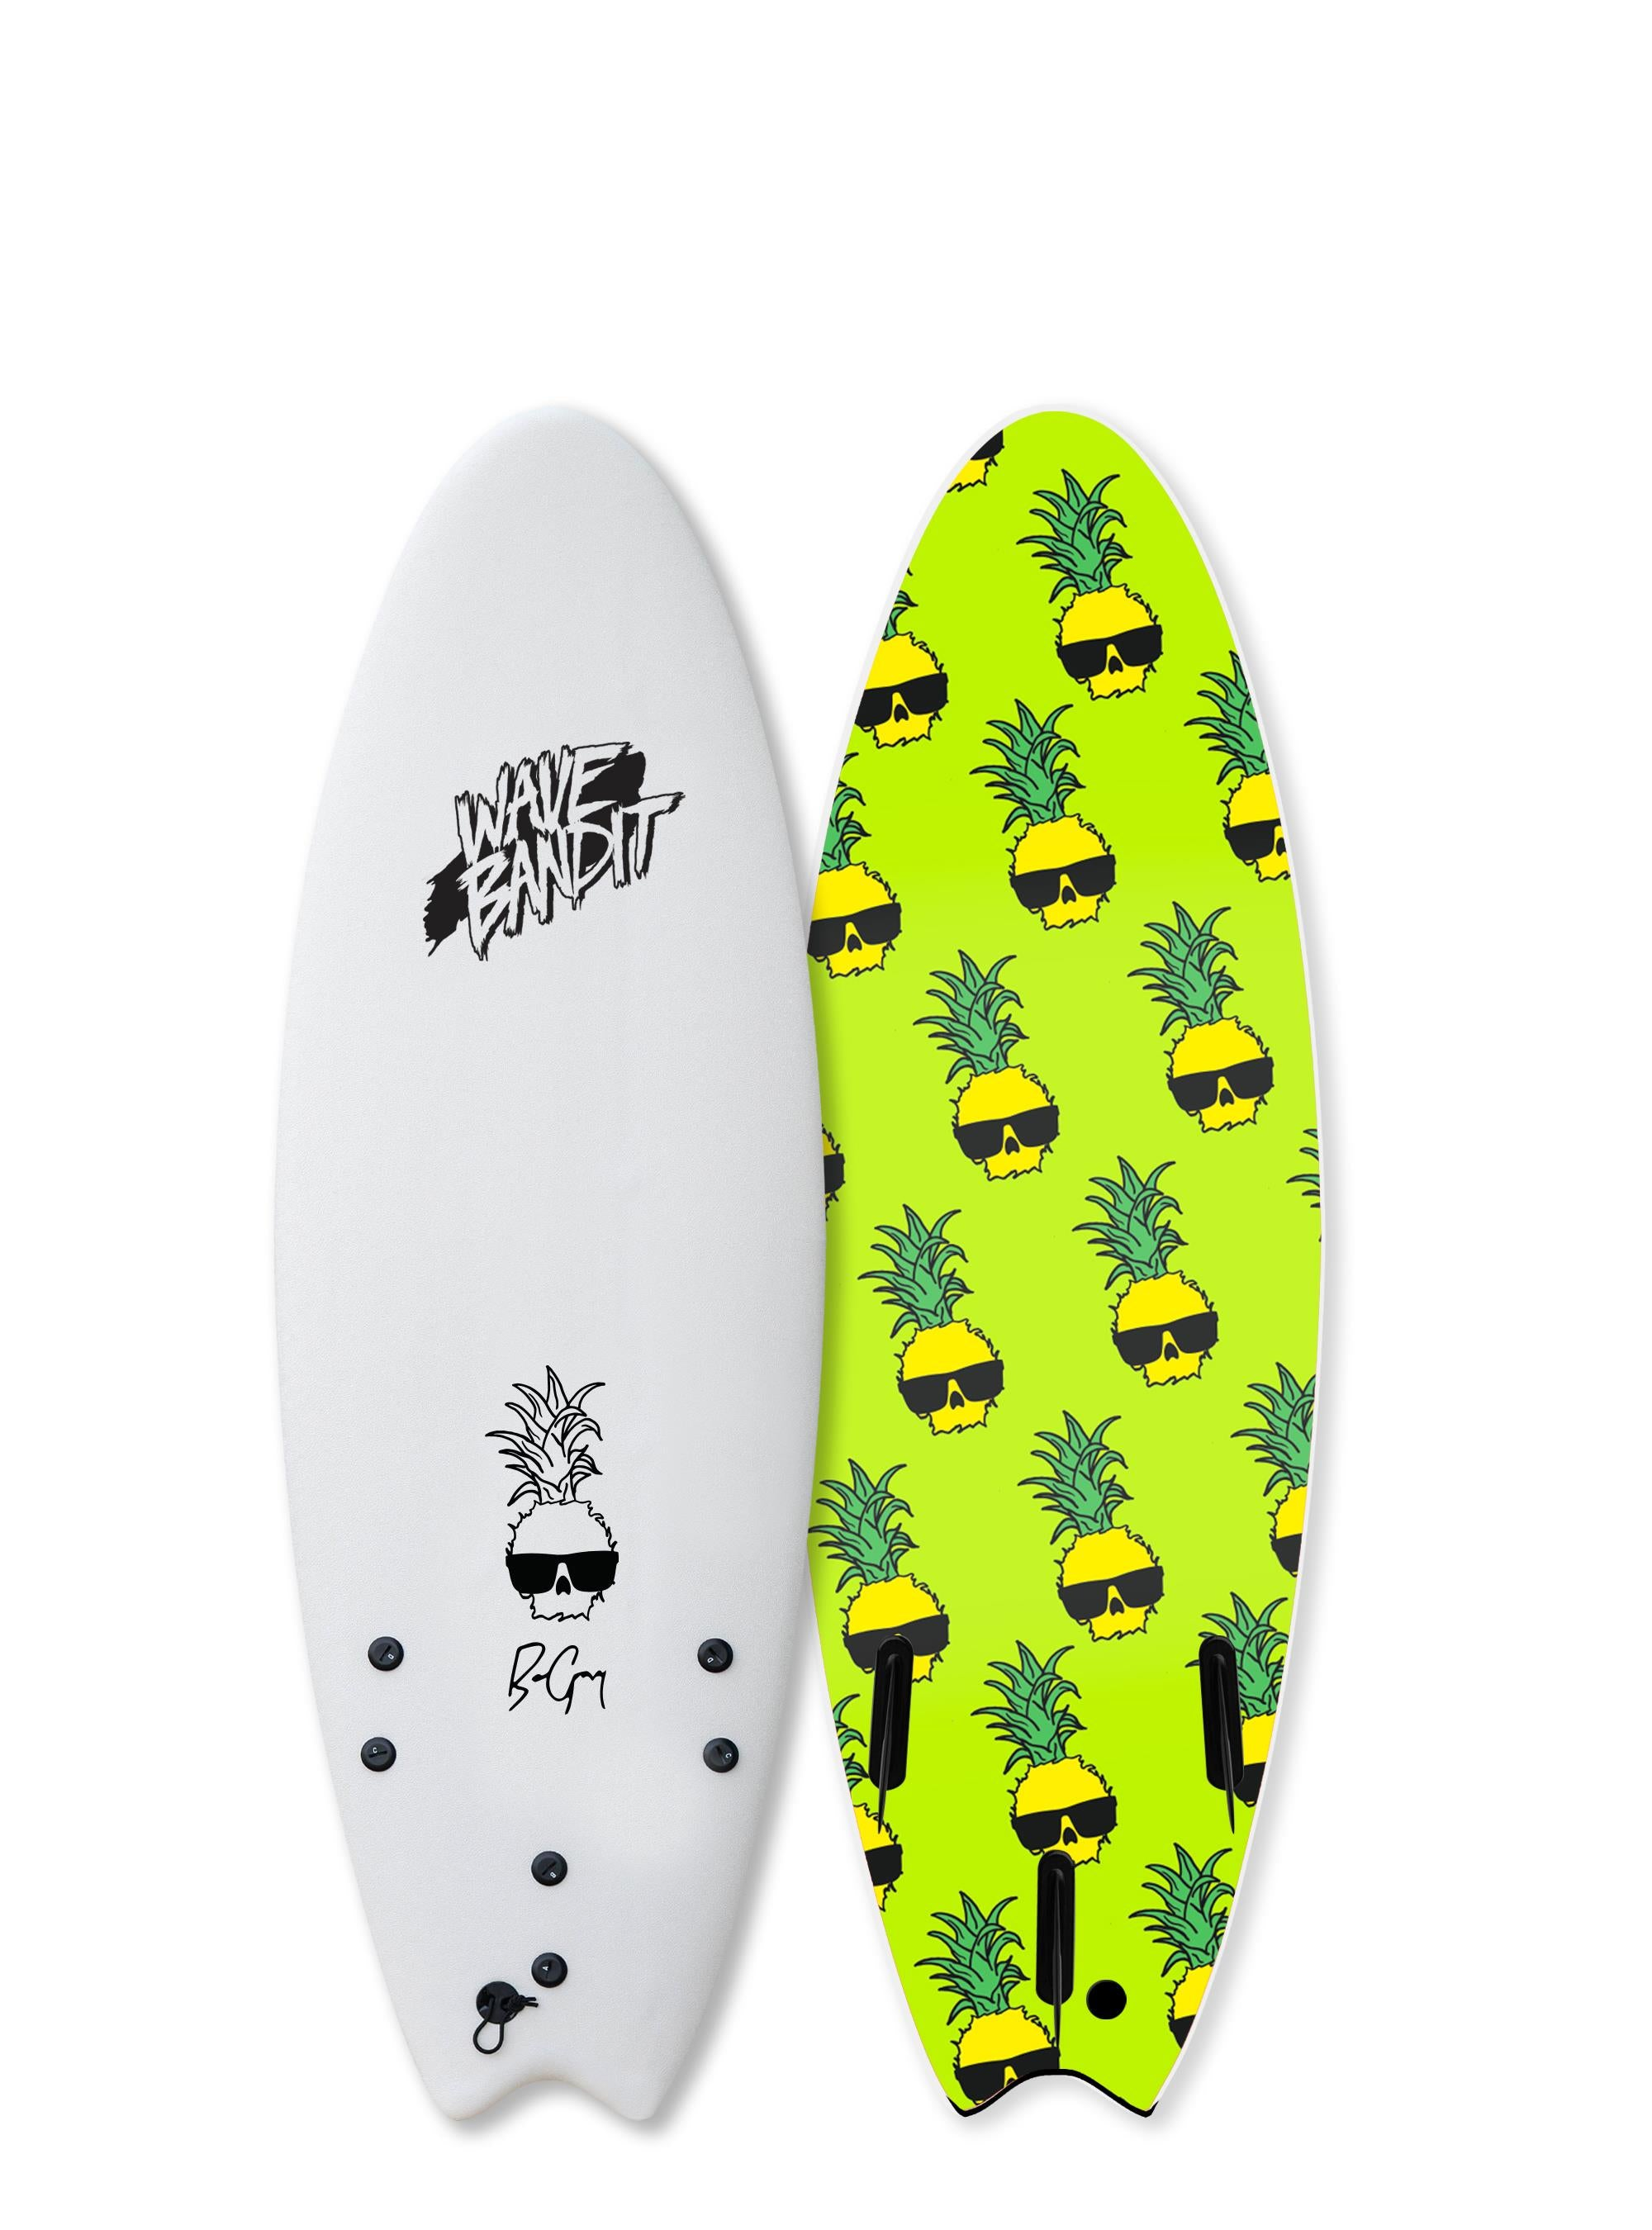 Catch Surf Wave Bandit Performer Tri - Ben Gravy 5-6 White 20 - Board Store Catch SurfSoftboard